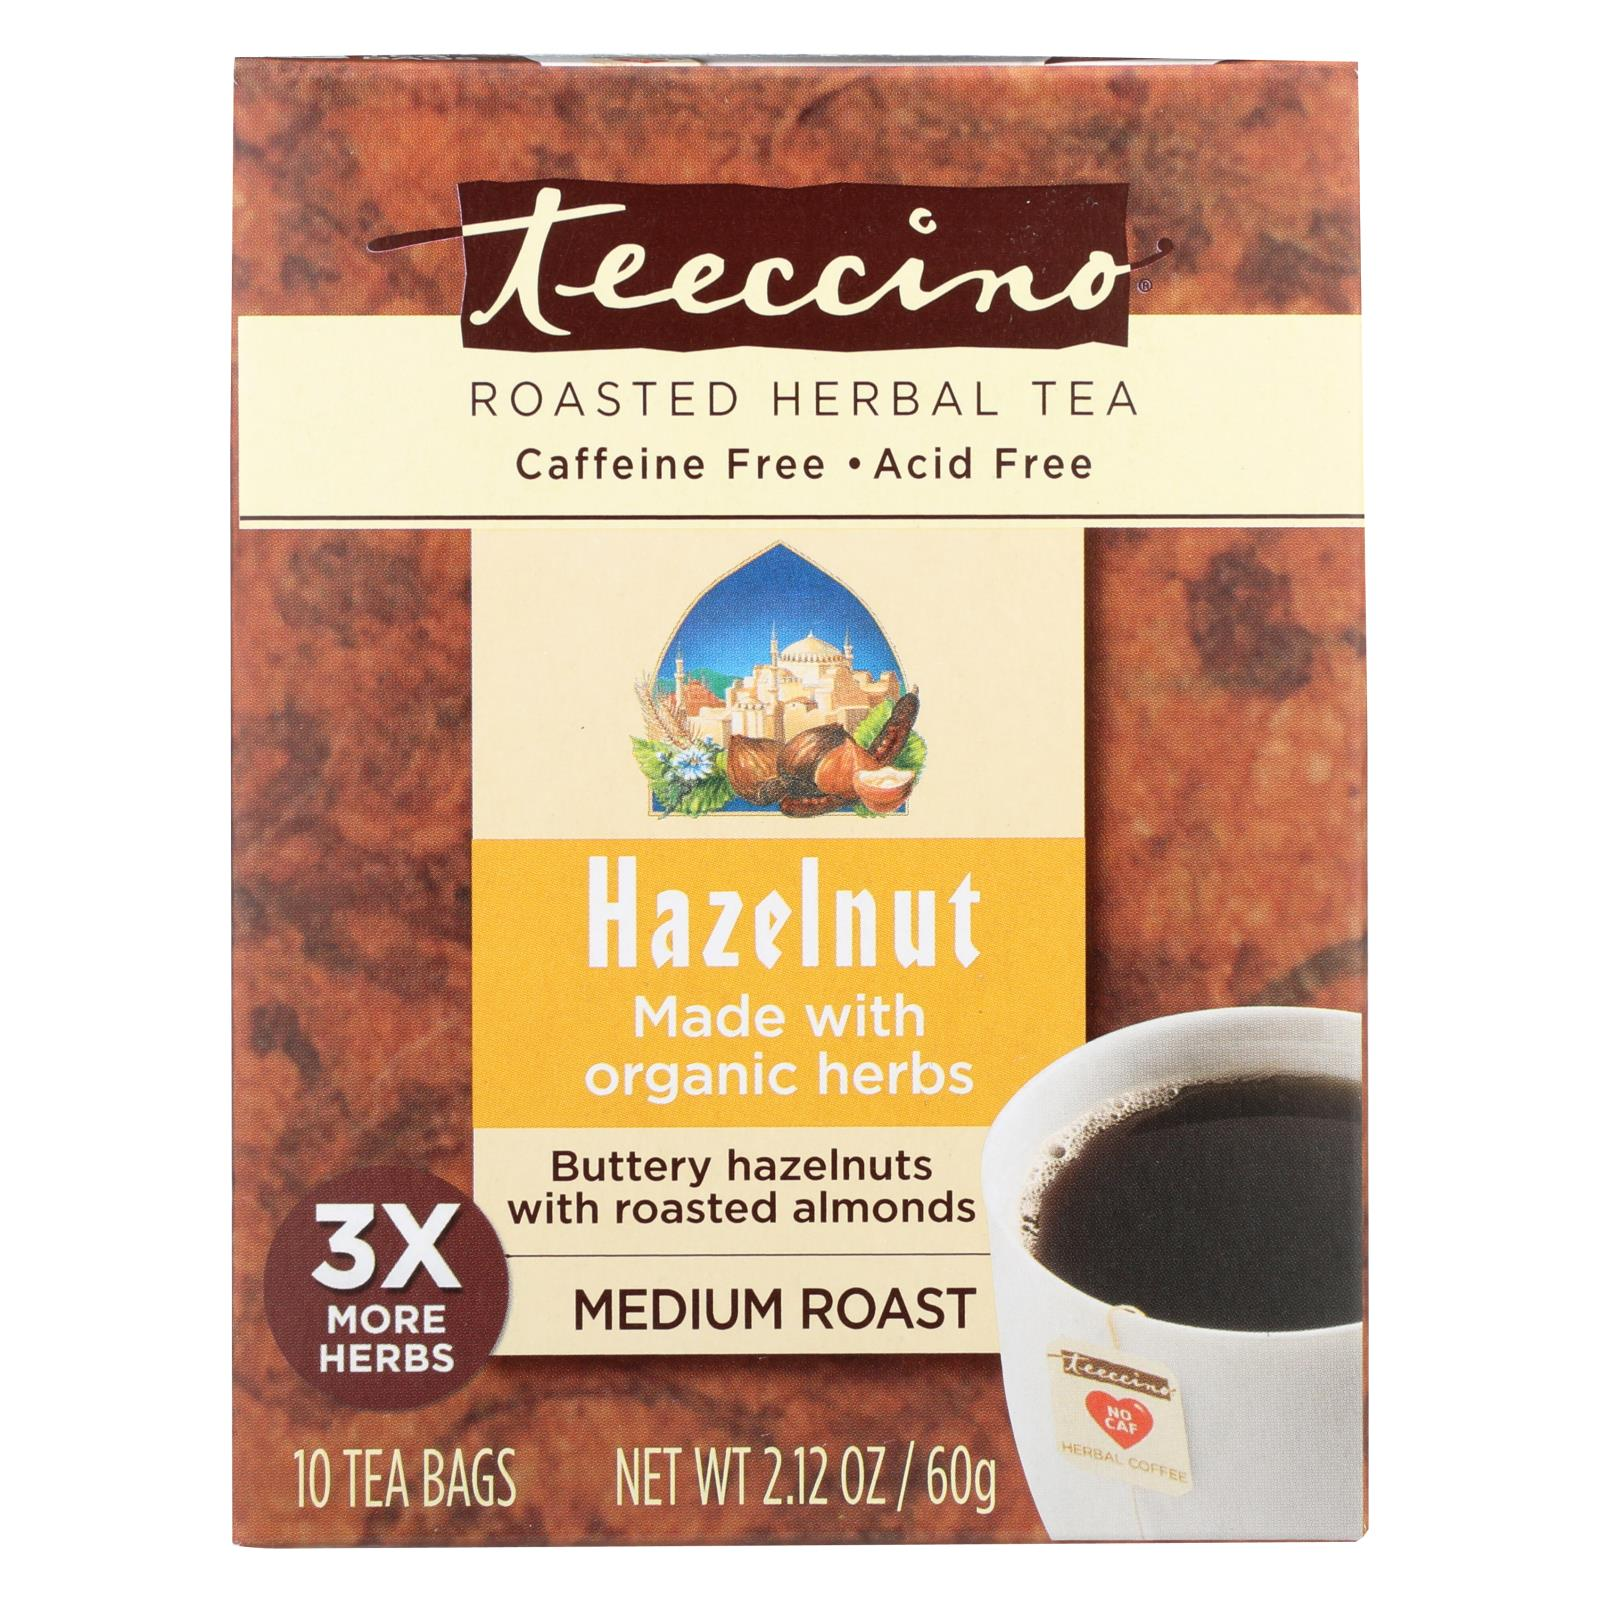 Buy Teeccino Herbal Coffee Hazelnut - 10 Tea Bags - Case of 6 - Beverages from Veroeco.com